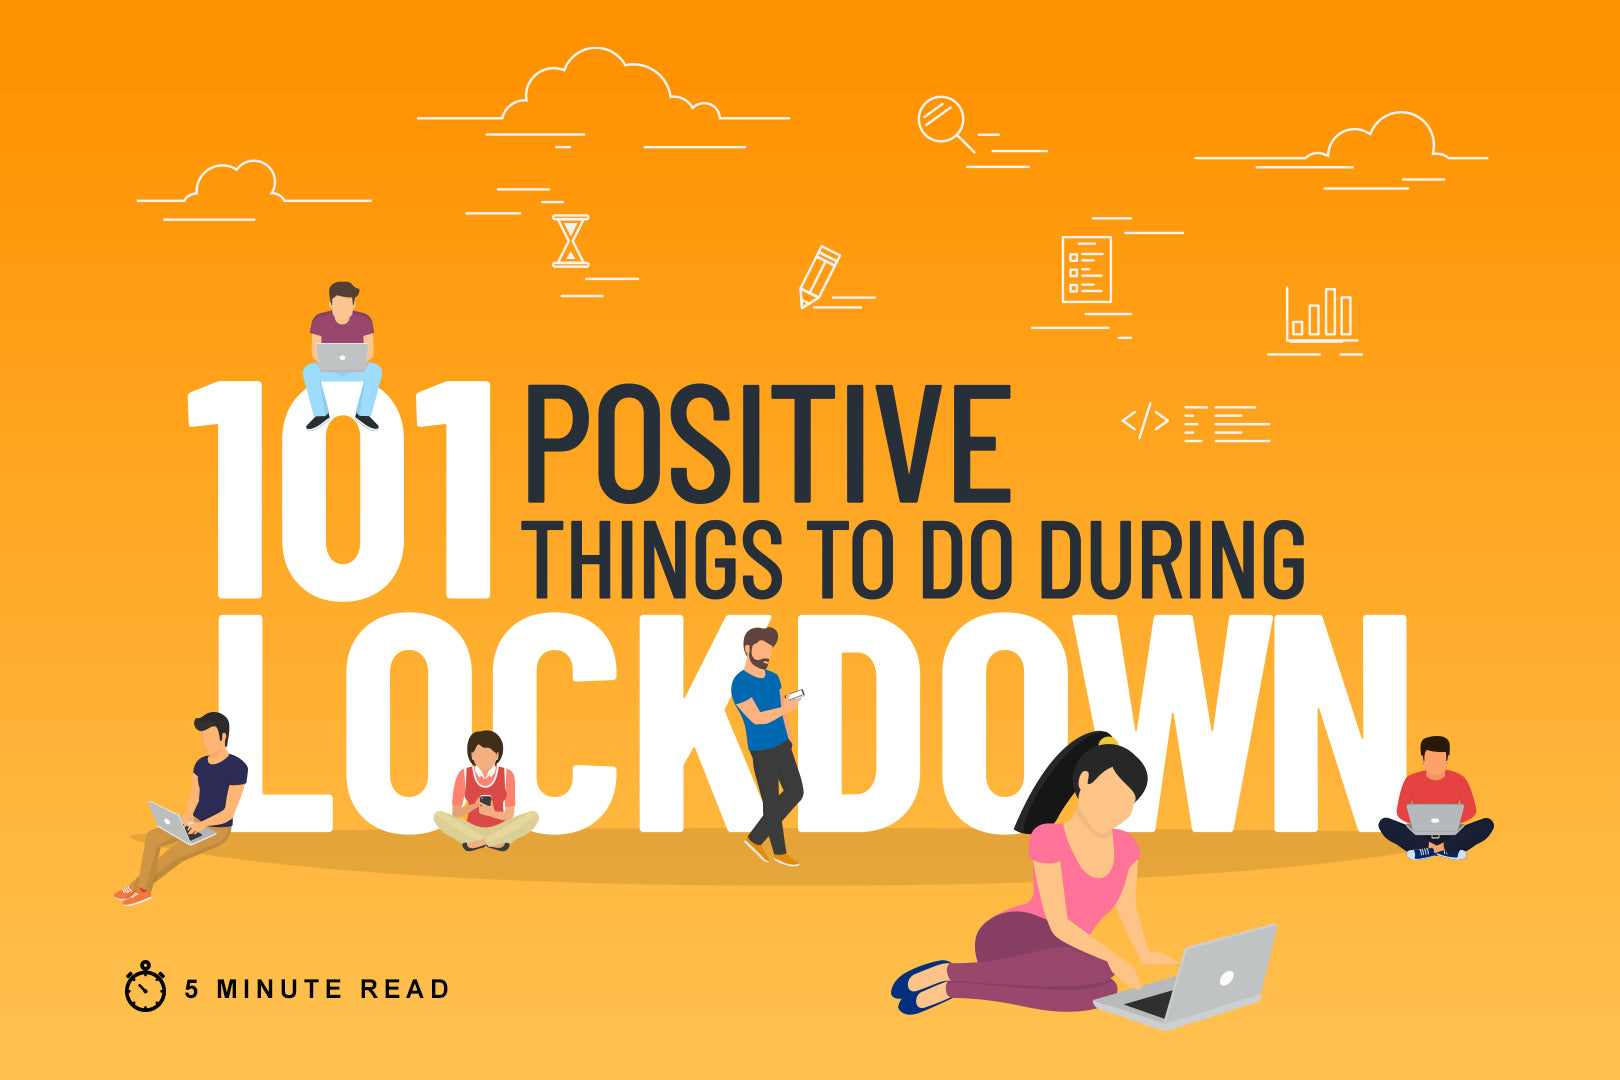 101 positive things to do during lockdown